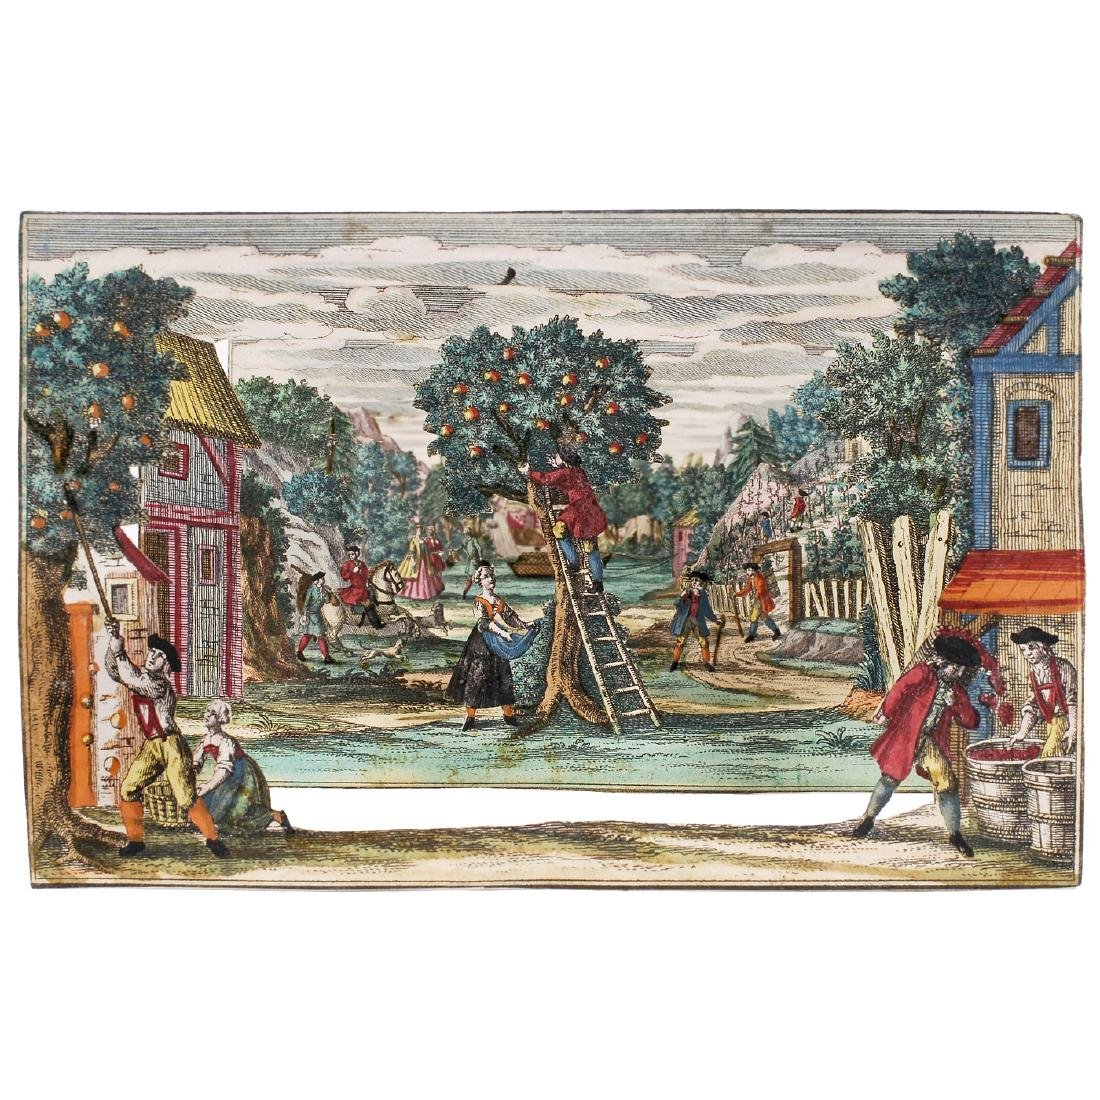 Perspective View of a Garden, c. 1750